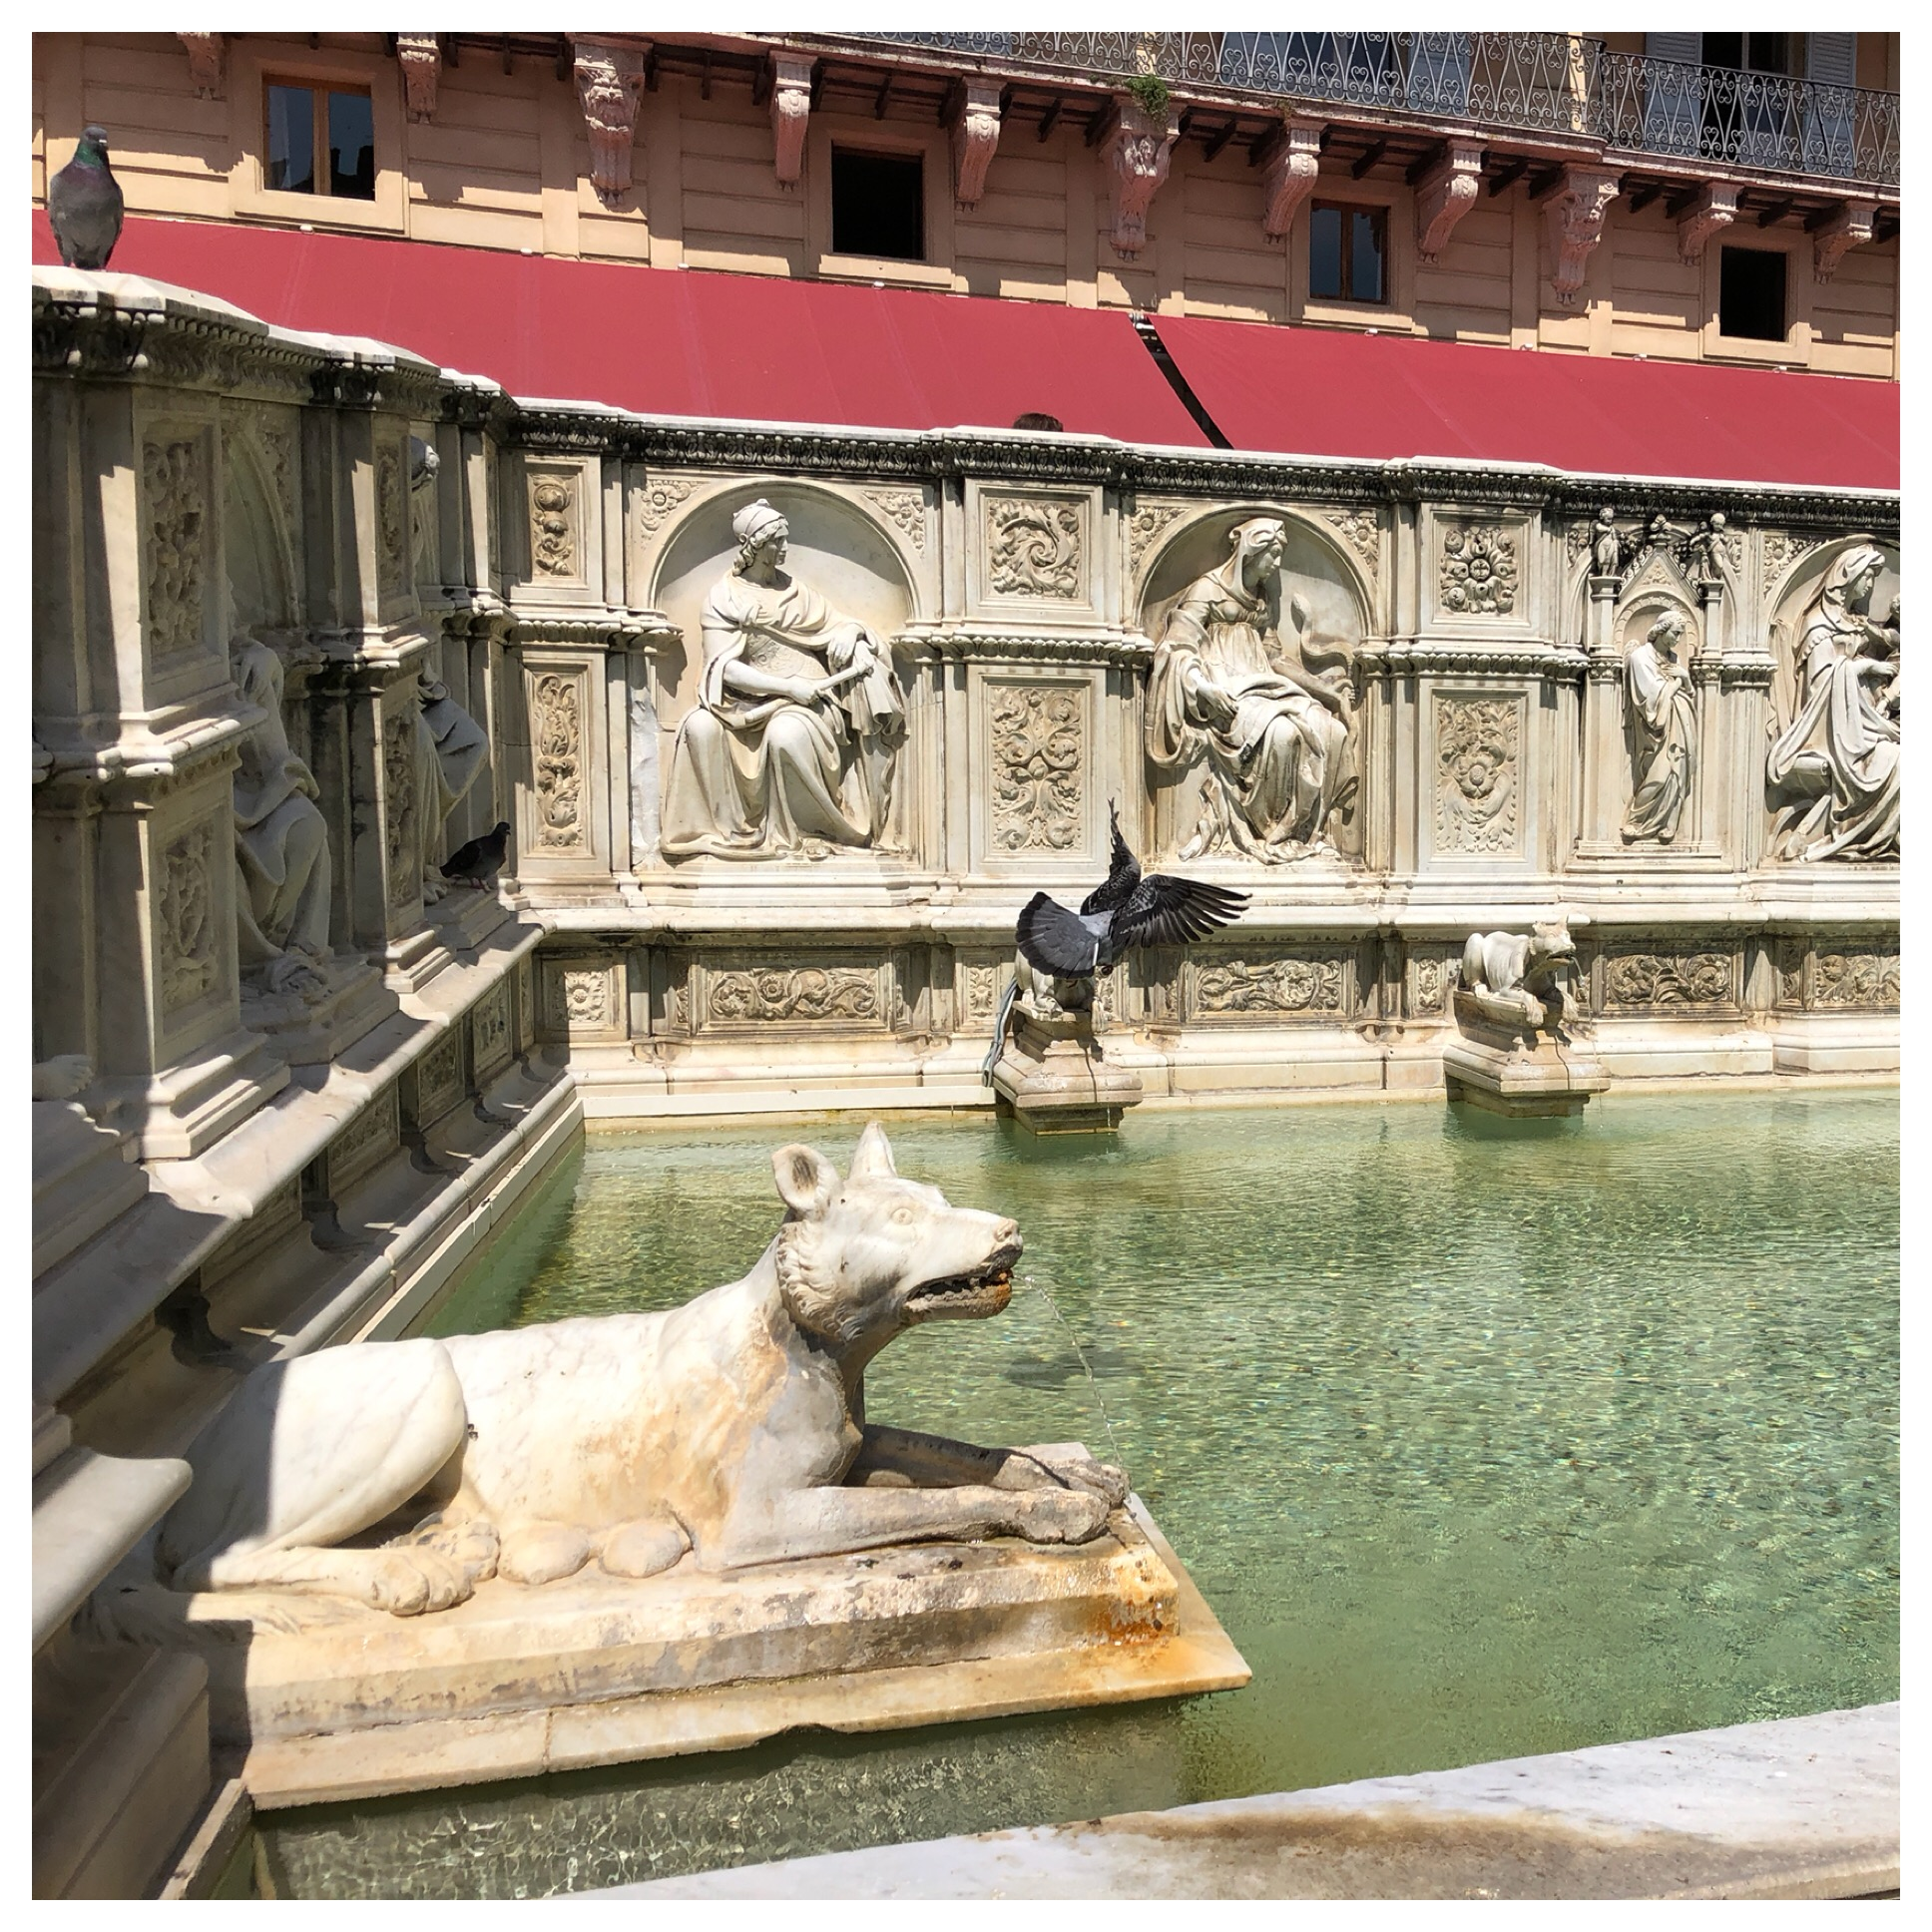 That's a she-wolf. They are all over Siena as one of their symbols.